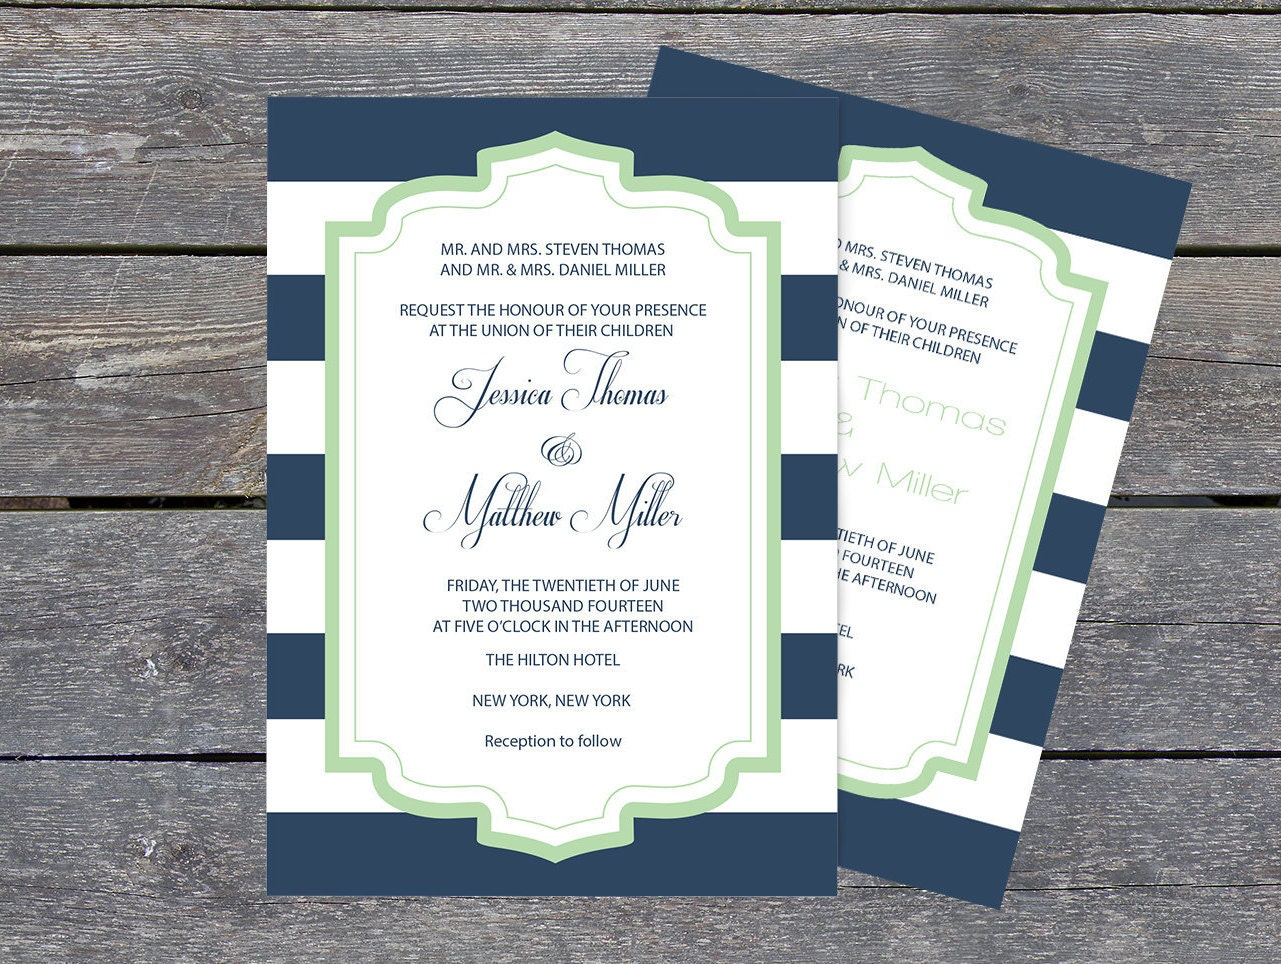 Striped Wedding Invitations: Wedding Invitation Template Navy & White Striped Mint